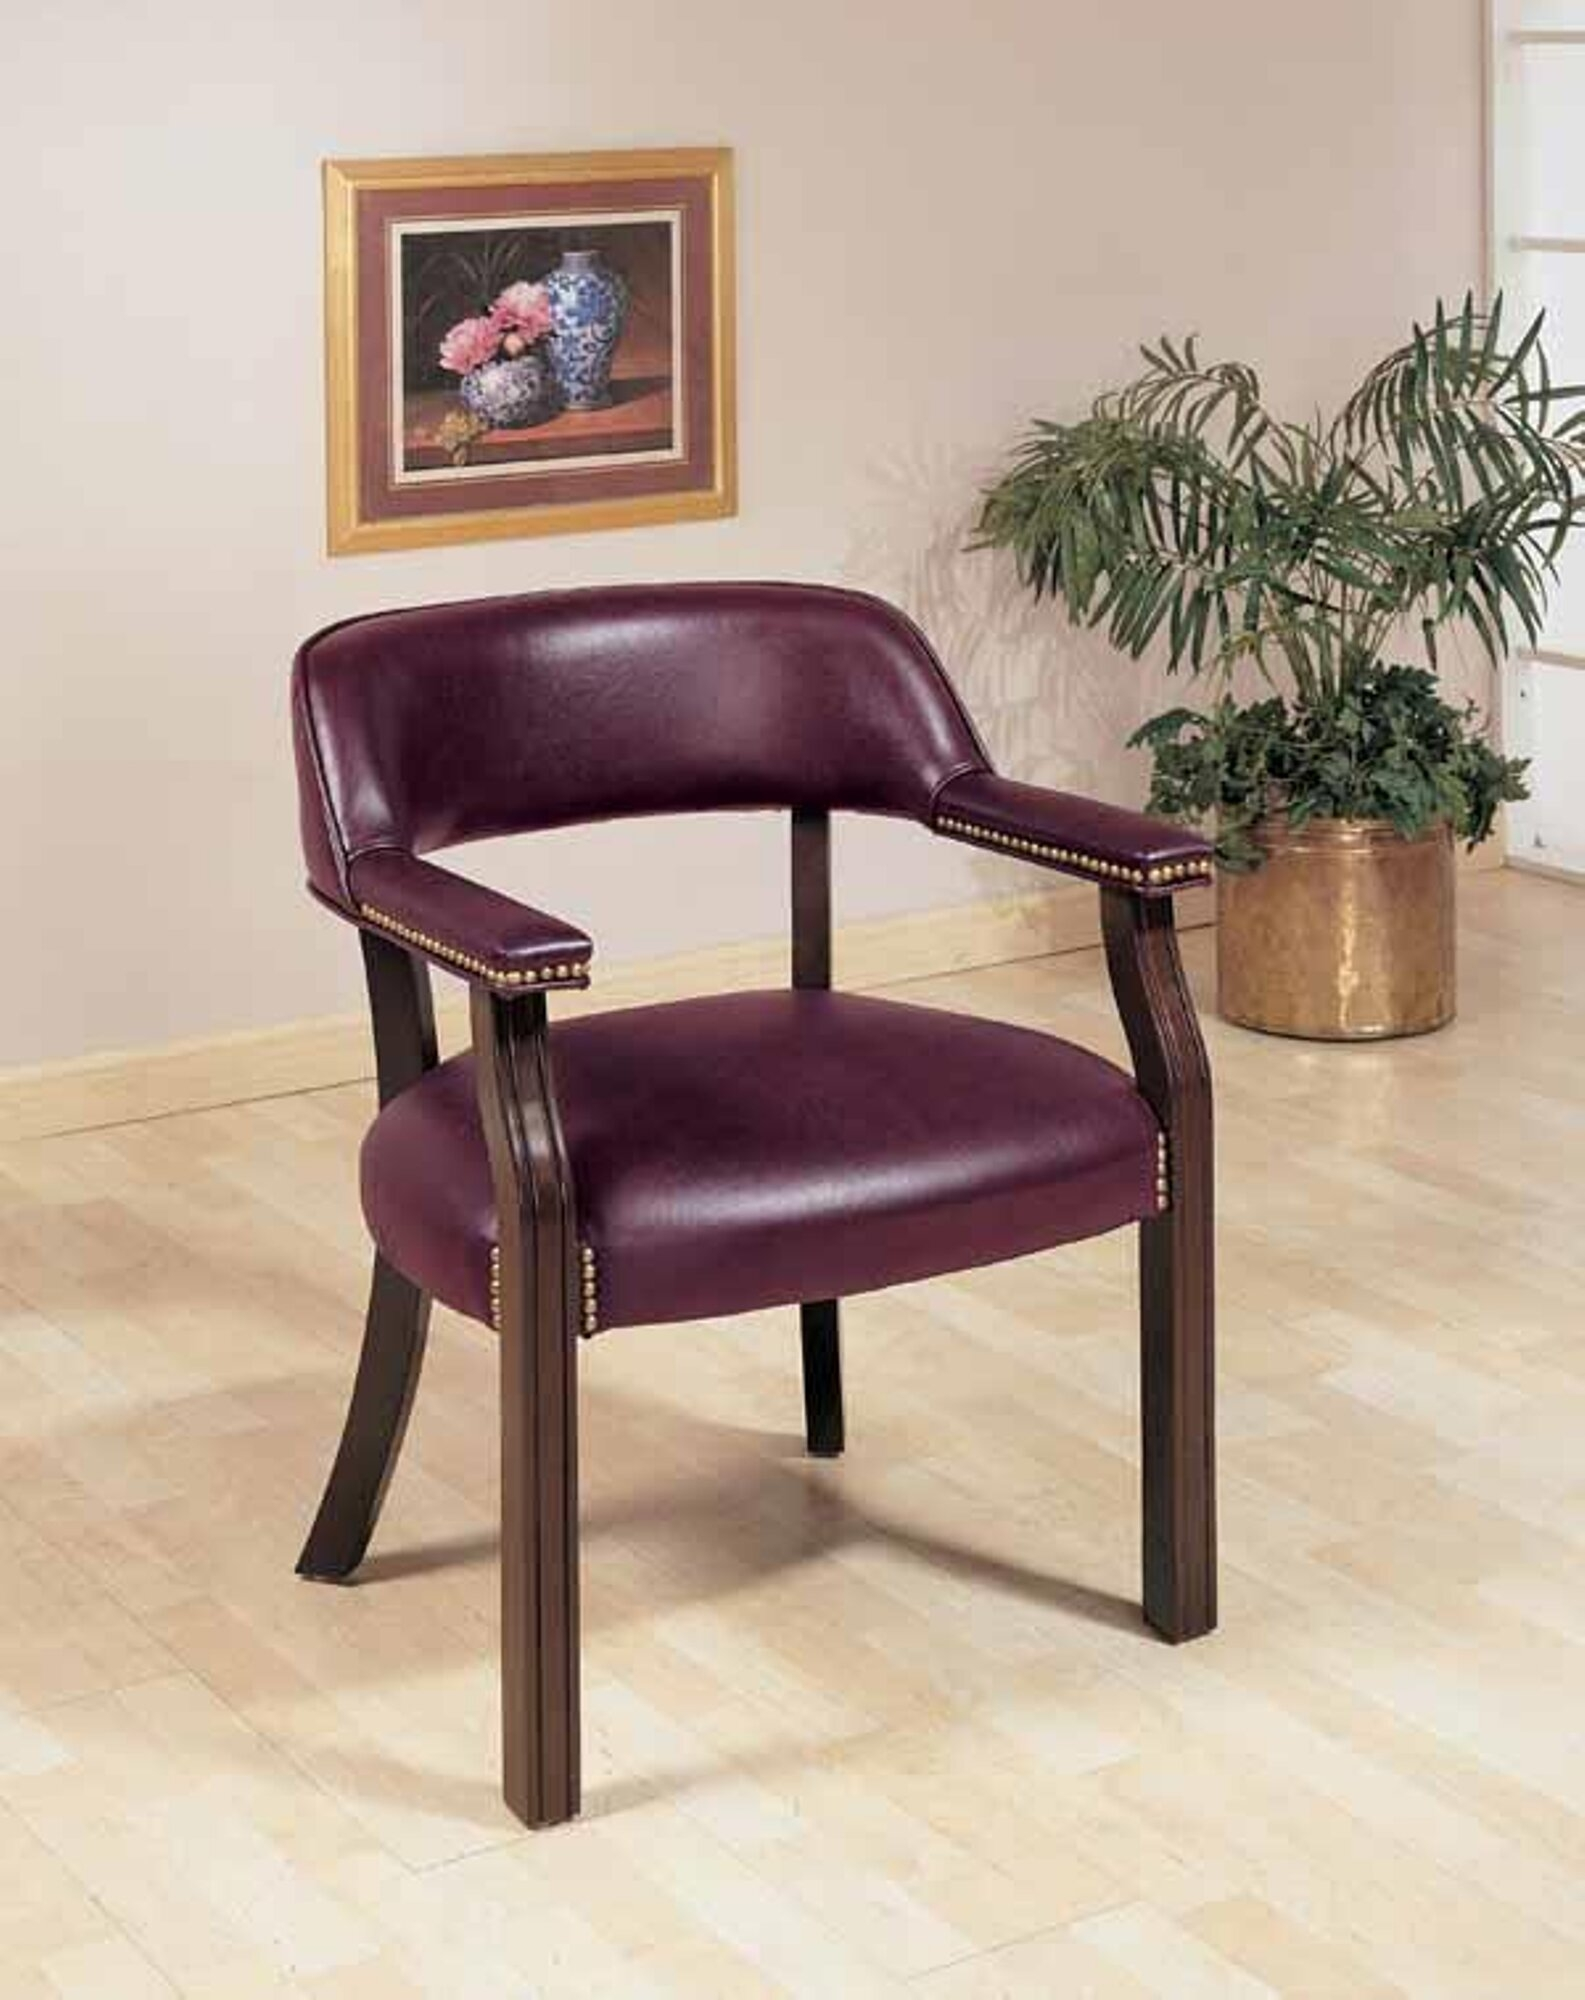 Upholstered Vinyl Arm Chair